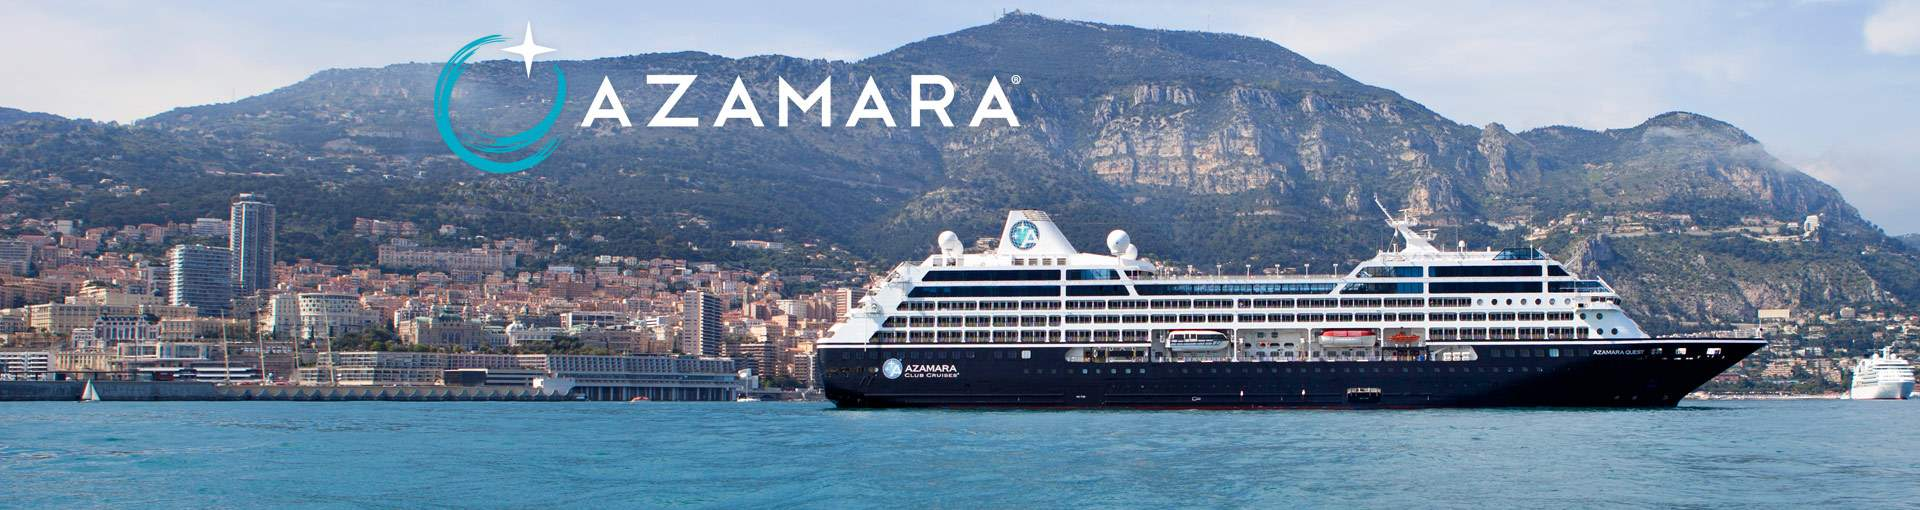 Azamara Cruises, 2019 and 2020 Cruise Deals, Destinations, Ships